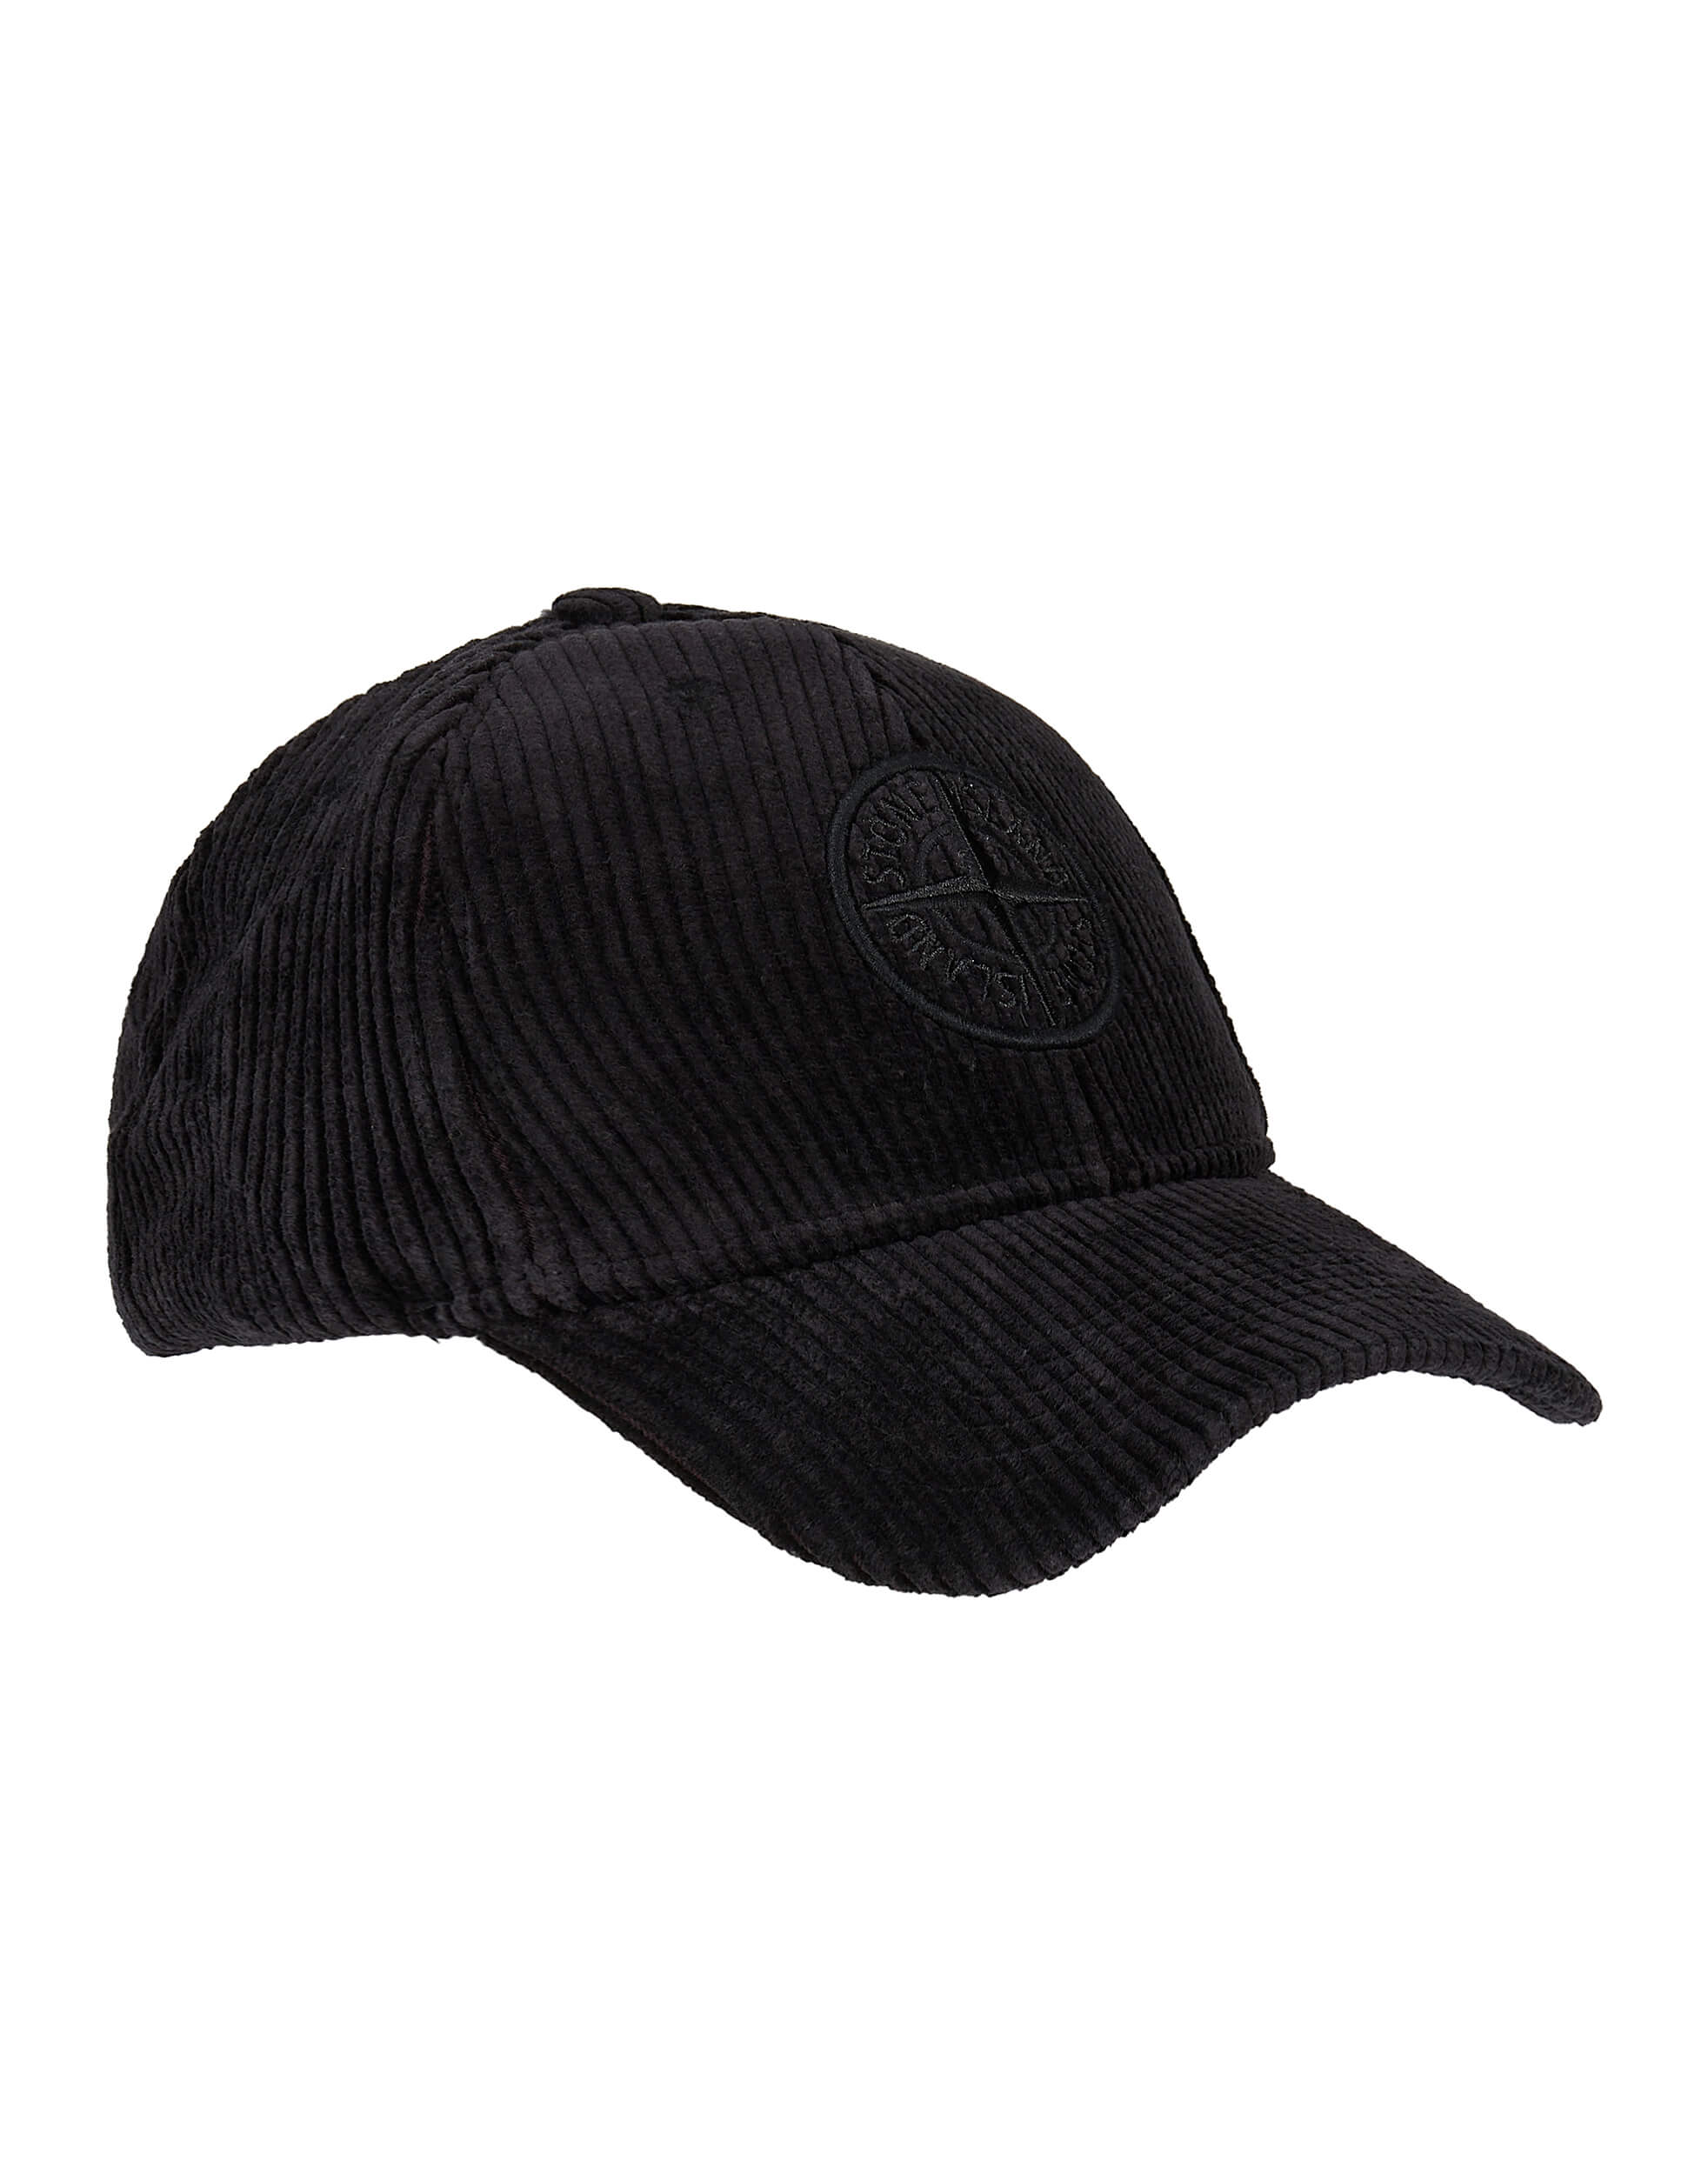 99178 Corduroy Hat in Black